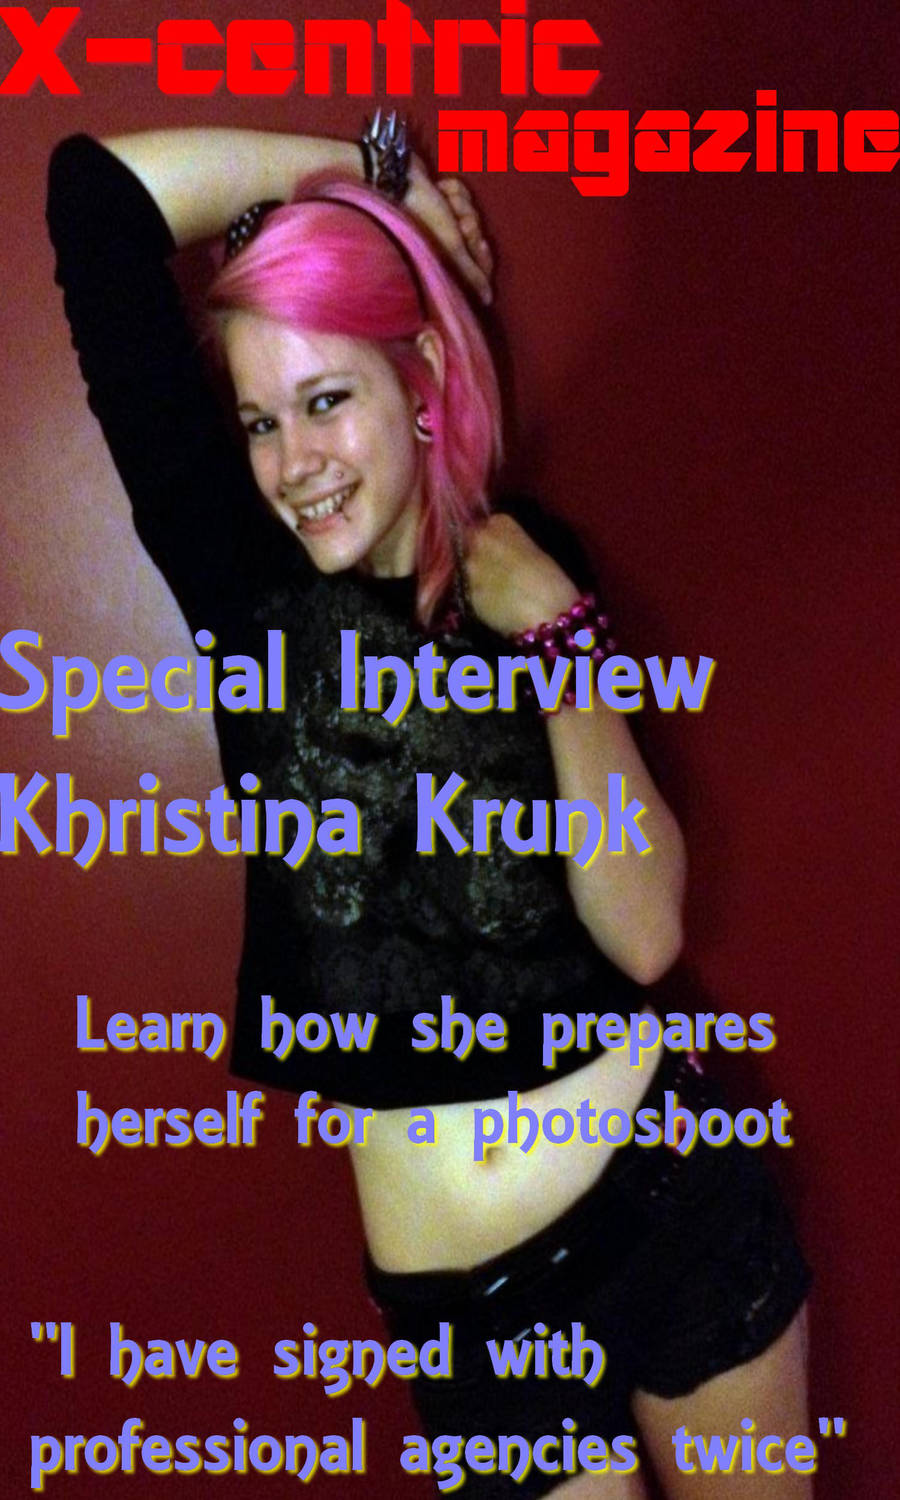 Special Interview With Khristina Krunk By Xxkatenightxx On Deviantart